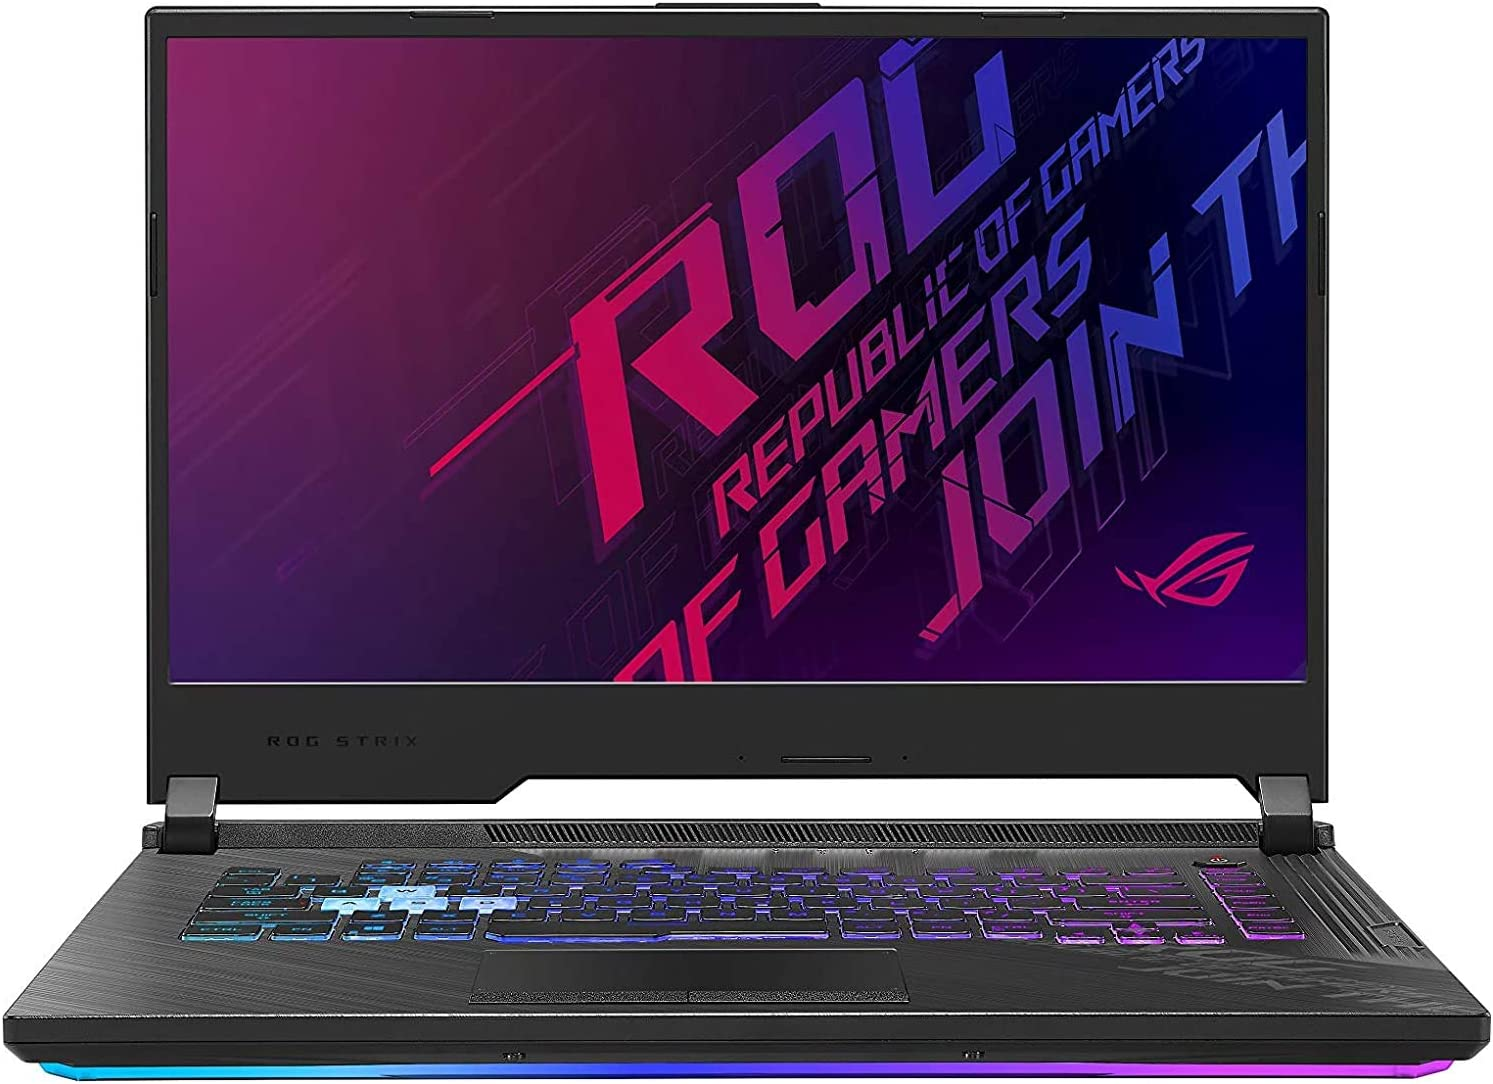 """CUK ROG Strix G15 by ASUS 15 inch Gaming Laptop (Intel Core i7, 64GB RAM, 1TB NVMe SSD, NVIDIA GeForce RTX 2060 6GB, 15.6"""" FHD 144Hz, Windows 10 Home) Gamer Notebook Computer"""